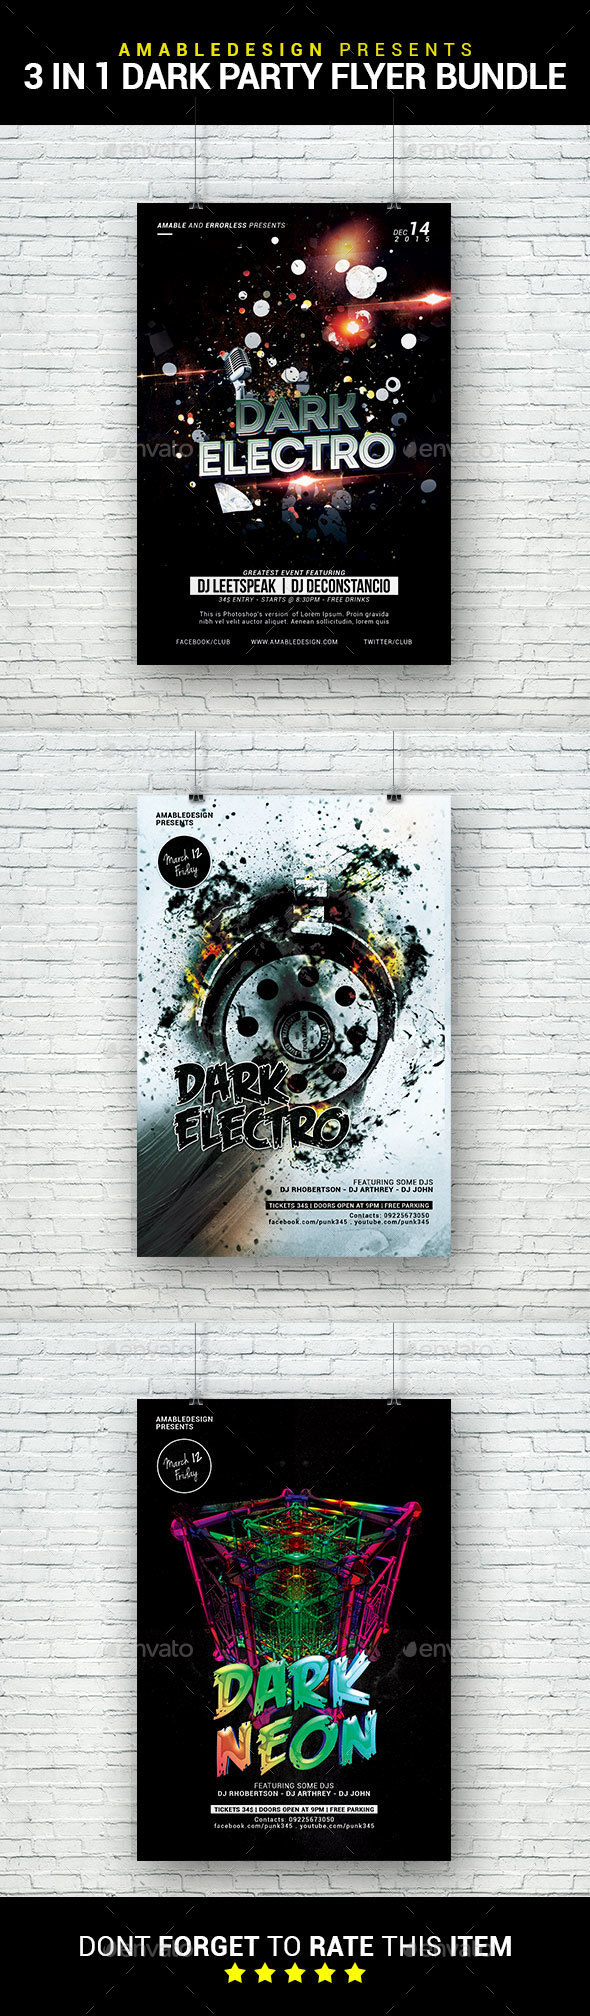 3 in 1 Dark Party Flyer/Poster Bundle - Clubs & Parties Events